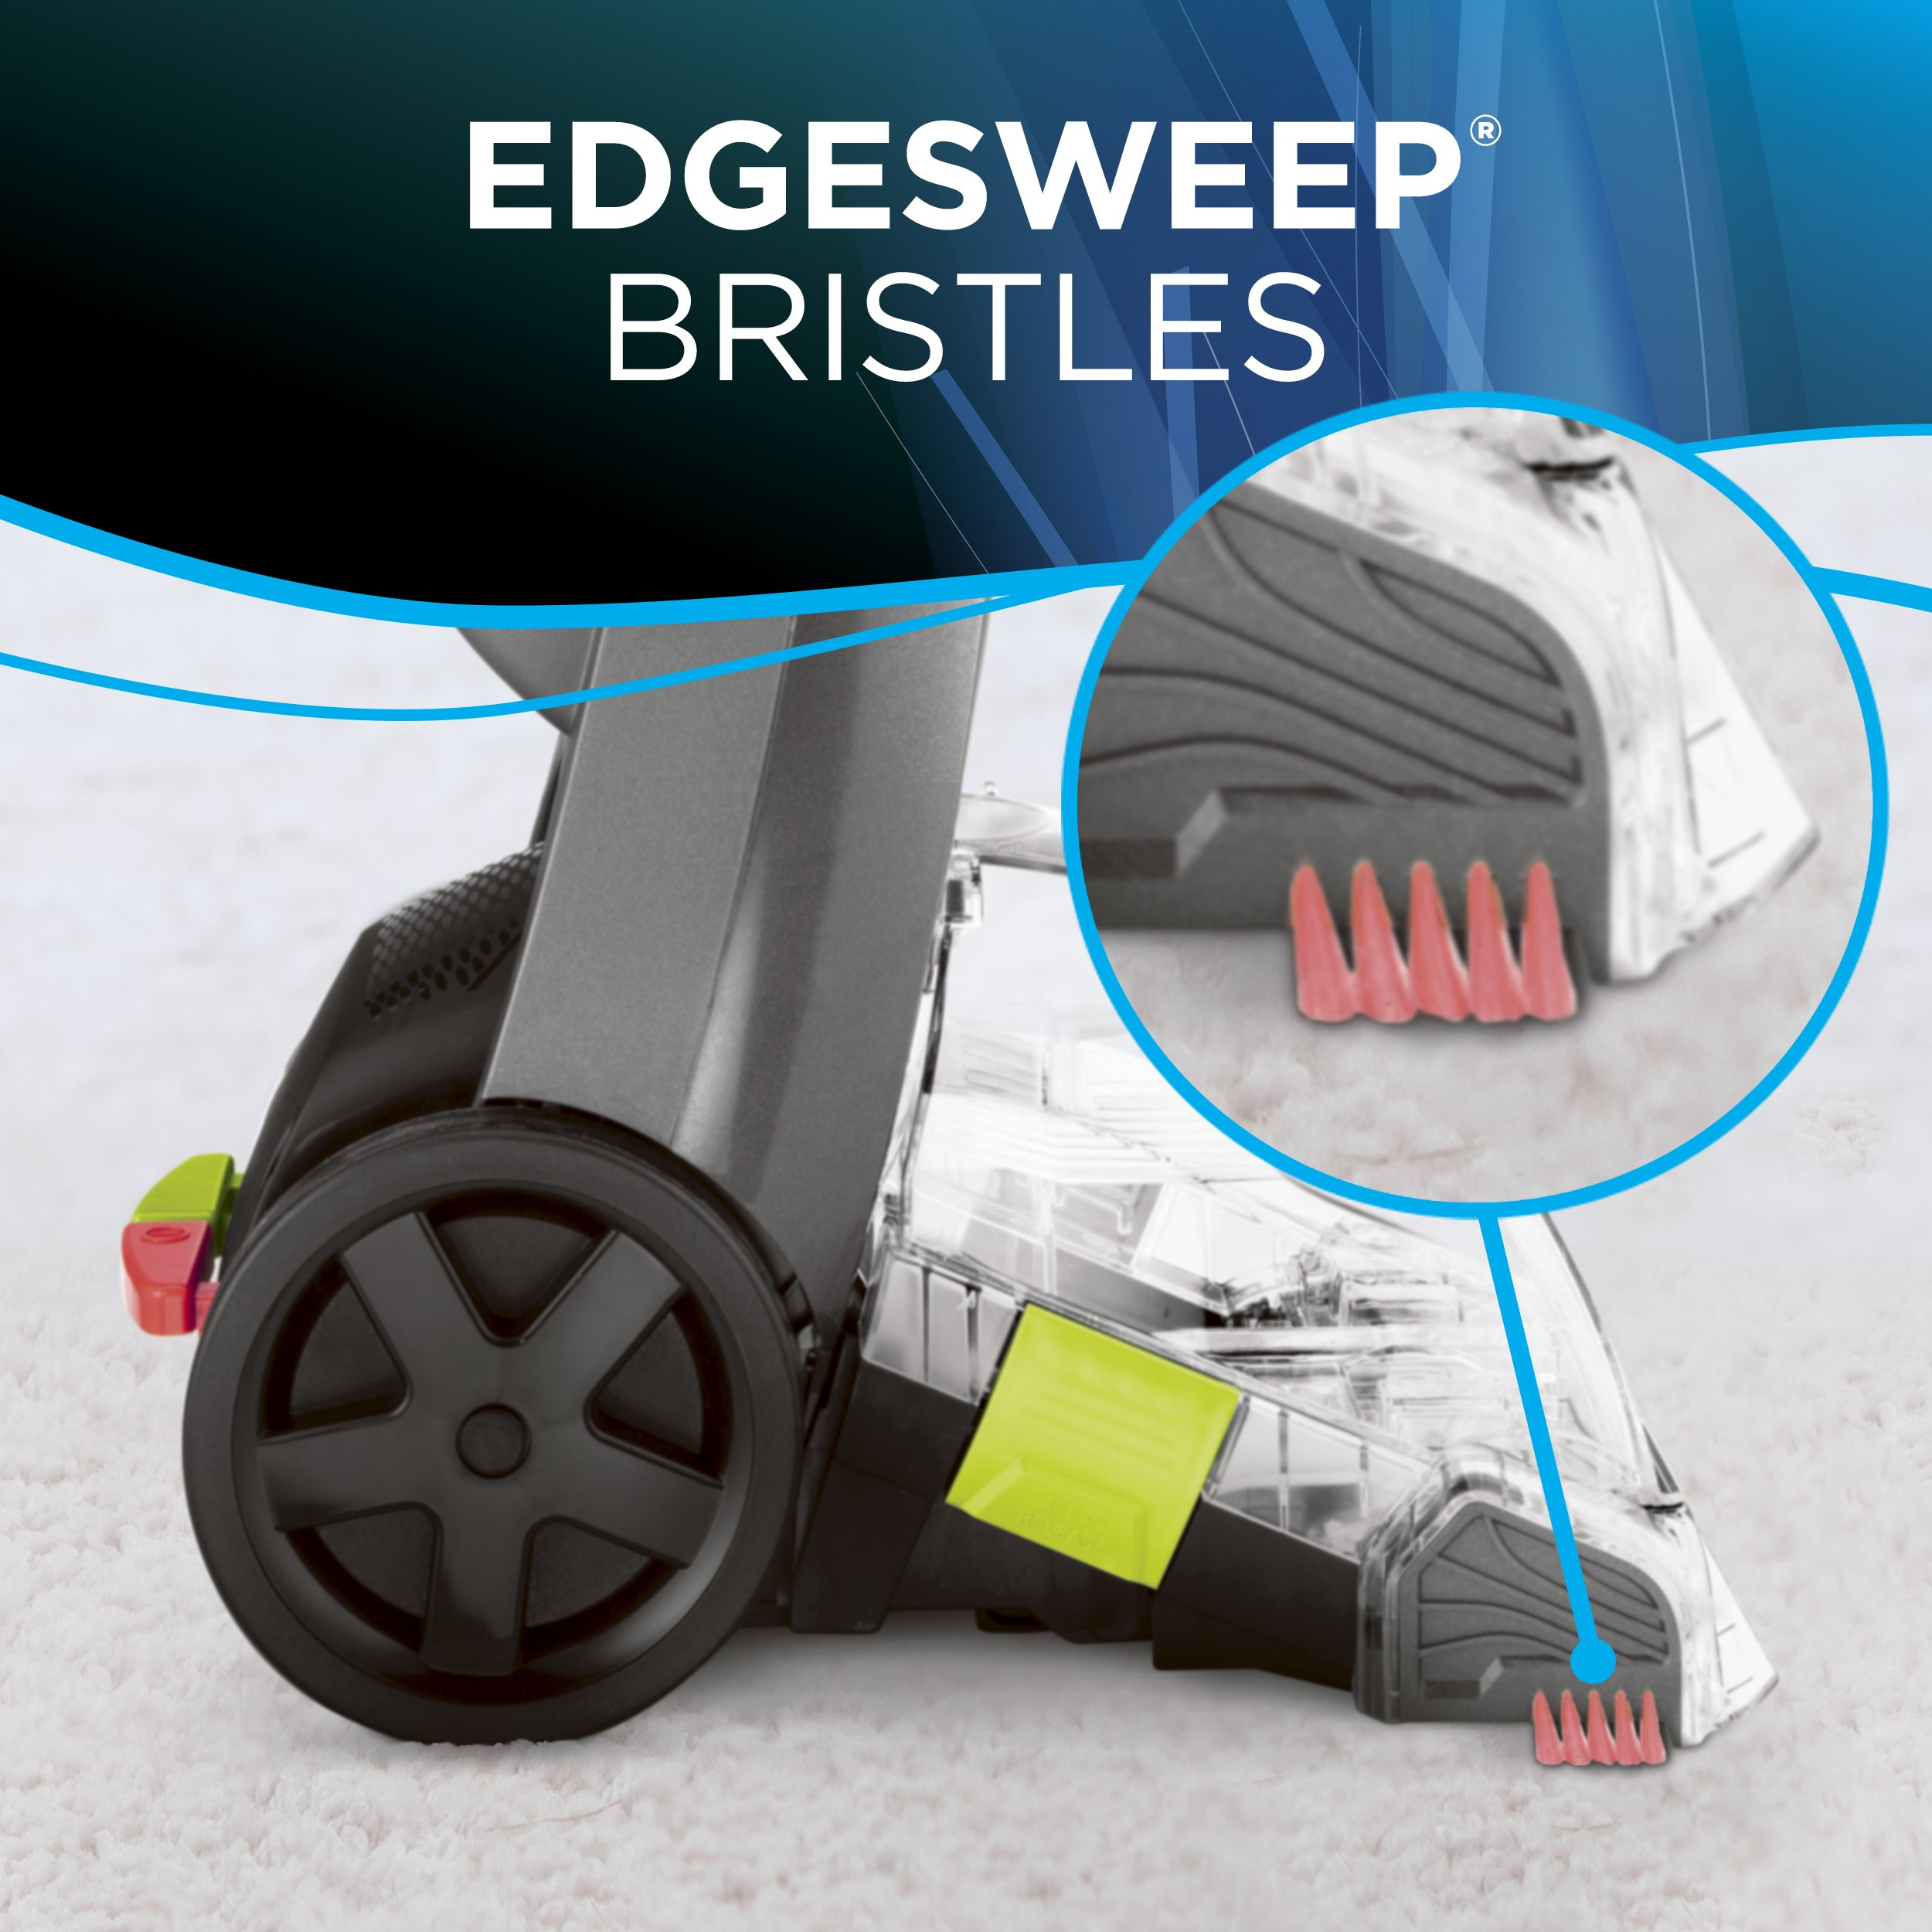 BISSELL Turboclean Powerbrush Pet Upright Carpet Cleaner Machine and Carpet Shampooer, 2085 by Bissell (Image #10)